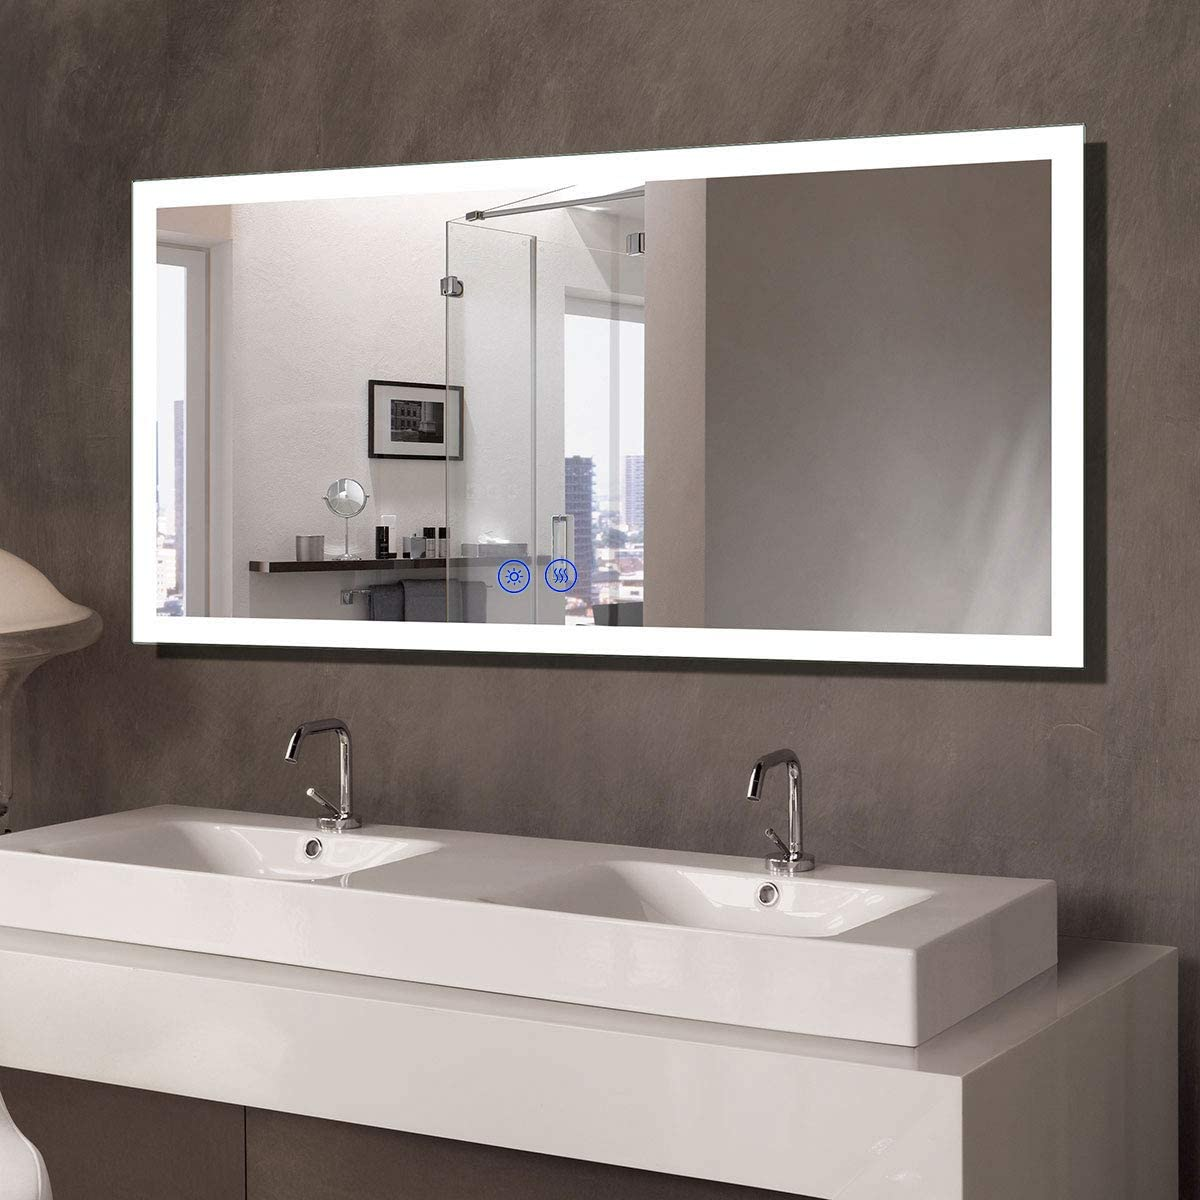 Amazon Com 55x28 In Dimmable Led Bathroom Mirror With Anti Fog Bluetooth Vertical Horizontal Mount Wall Mounted Vanity Large Mirror With Touch Button 6000k White Light Cri 90 Ip 44 Nt061 5528 Furniture Decor